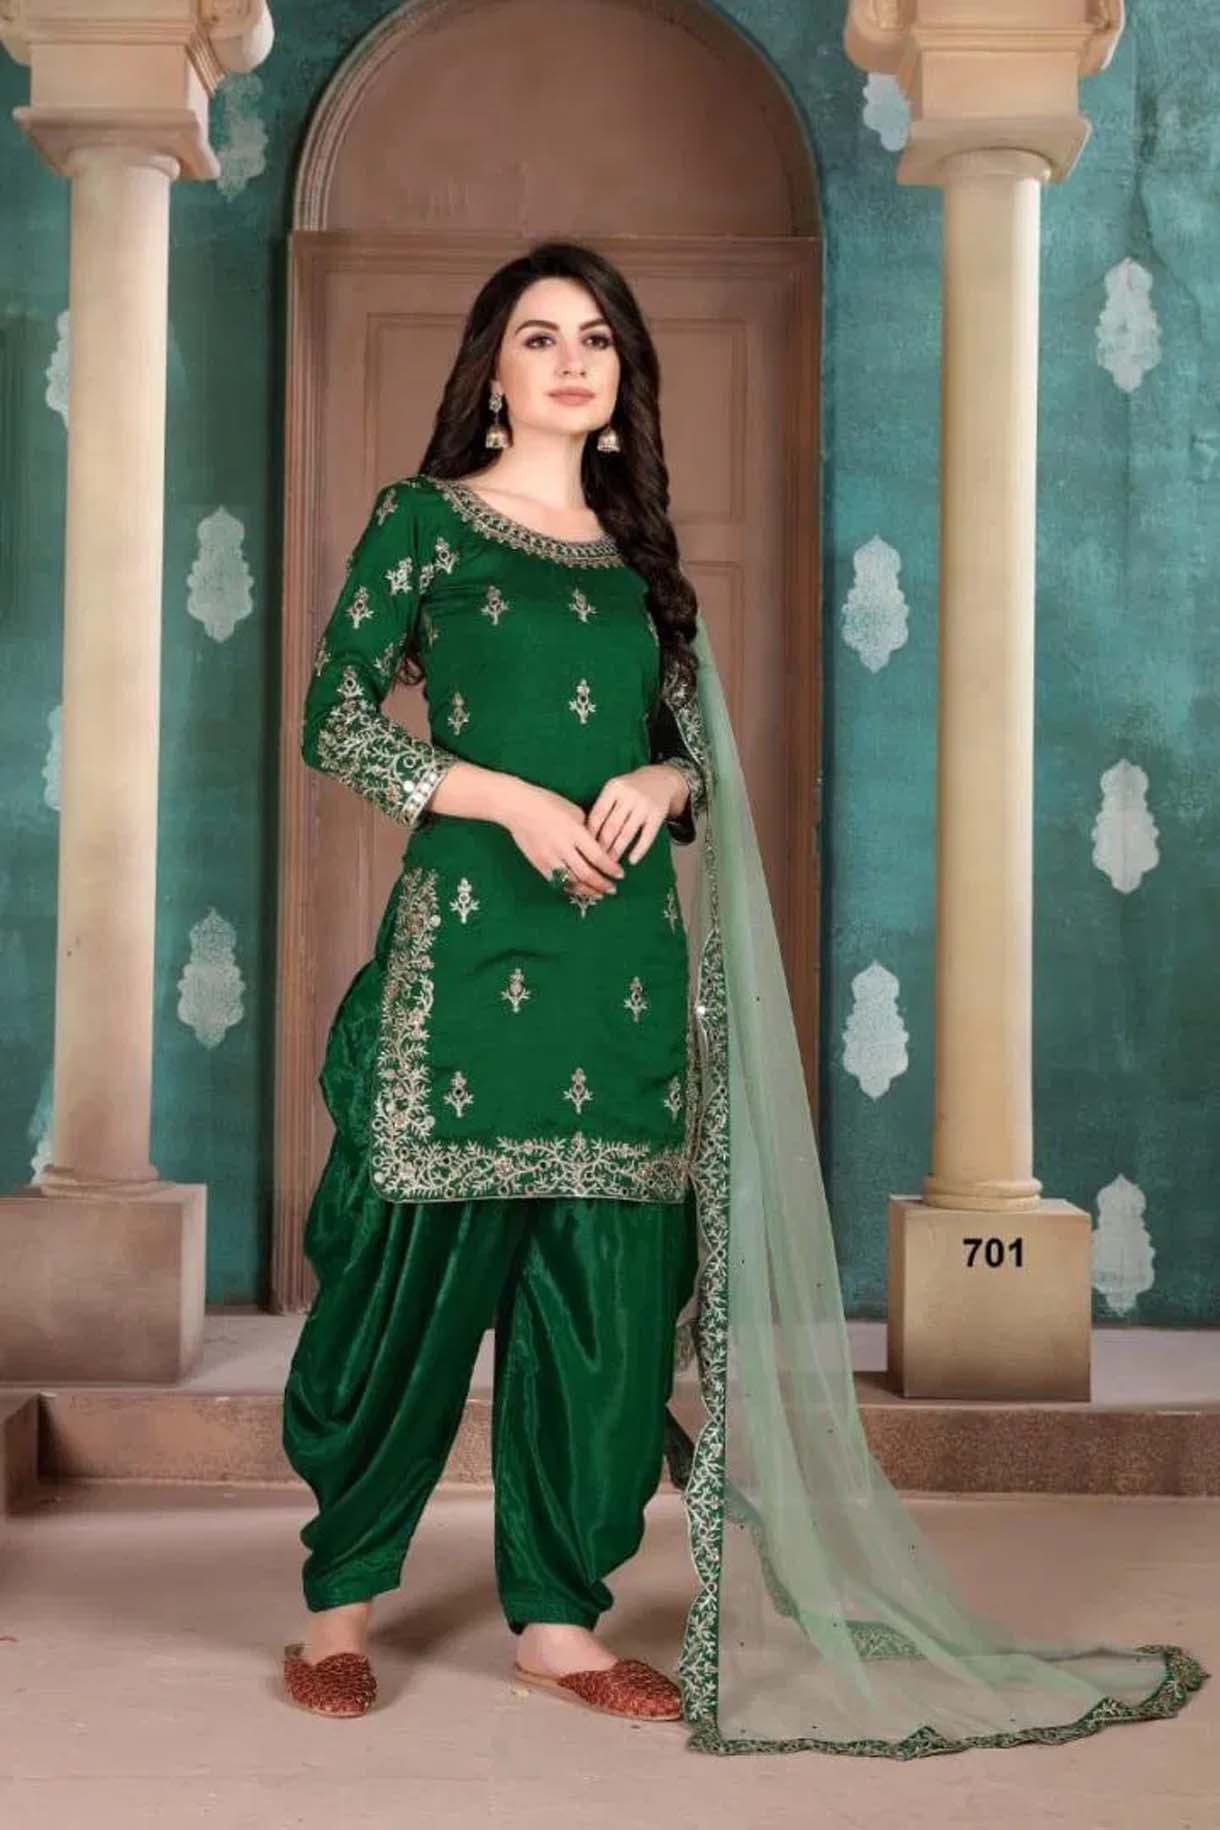 Greem Colour Patiala Salwar Suit Latest Design